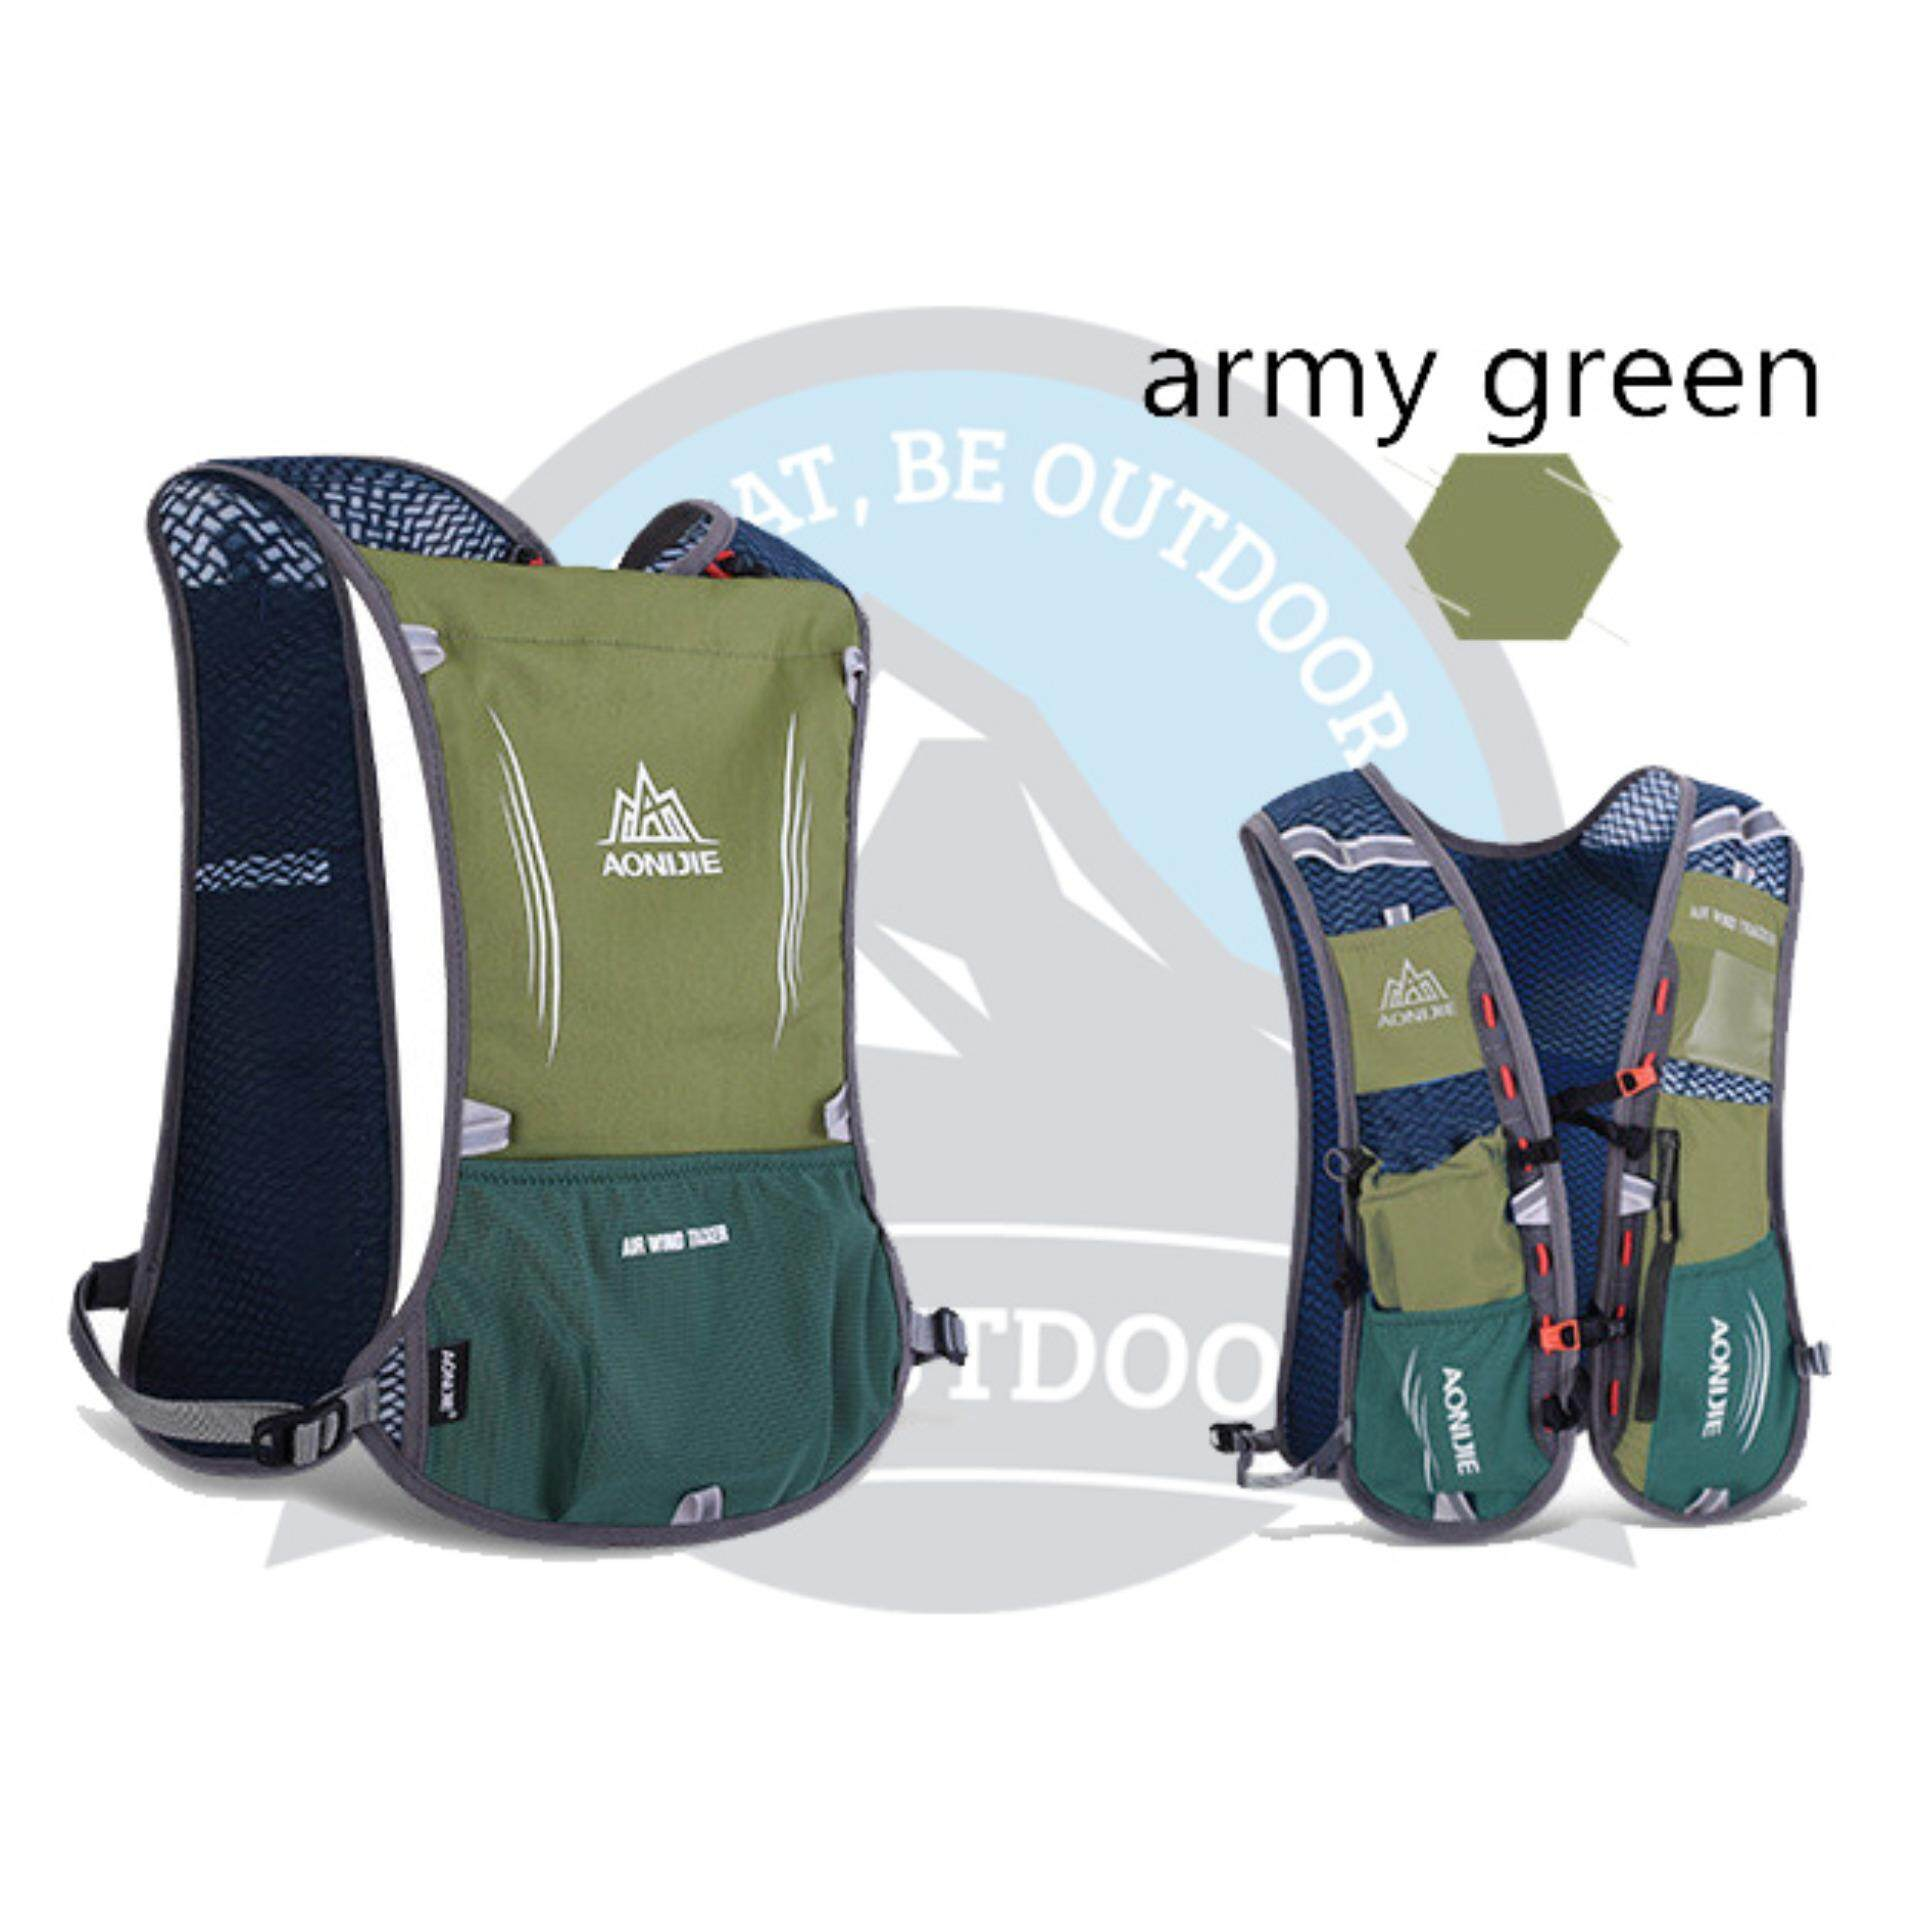 [READY STOCK] Aonijie 5L Outdoor Vest Bag With Multiple Pockets - ARMY GREEN